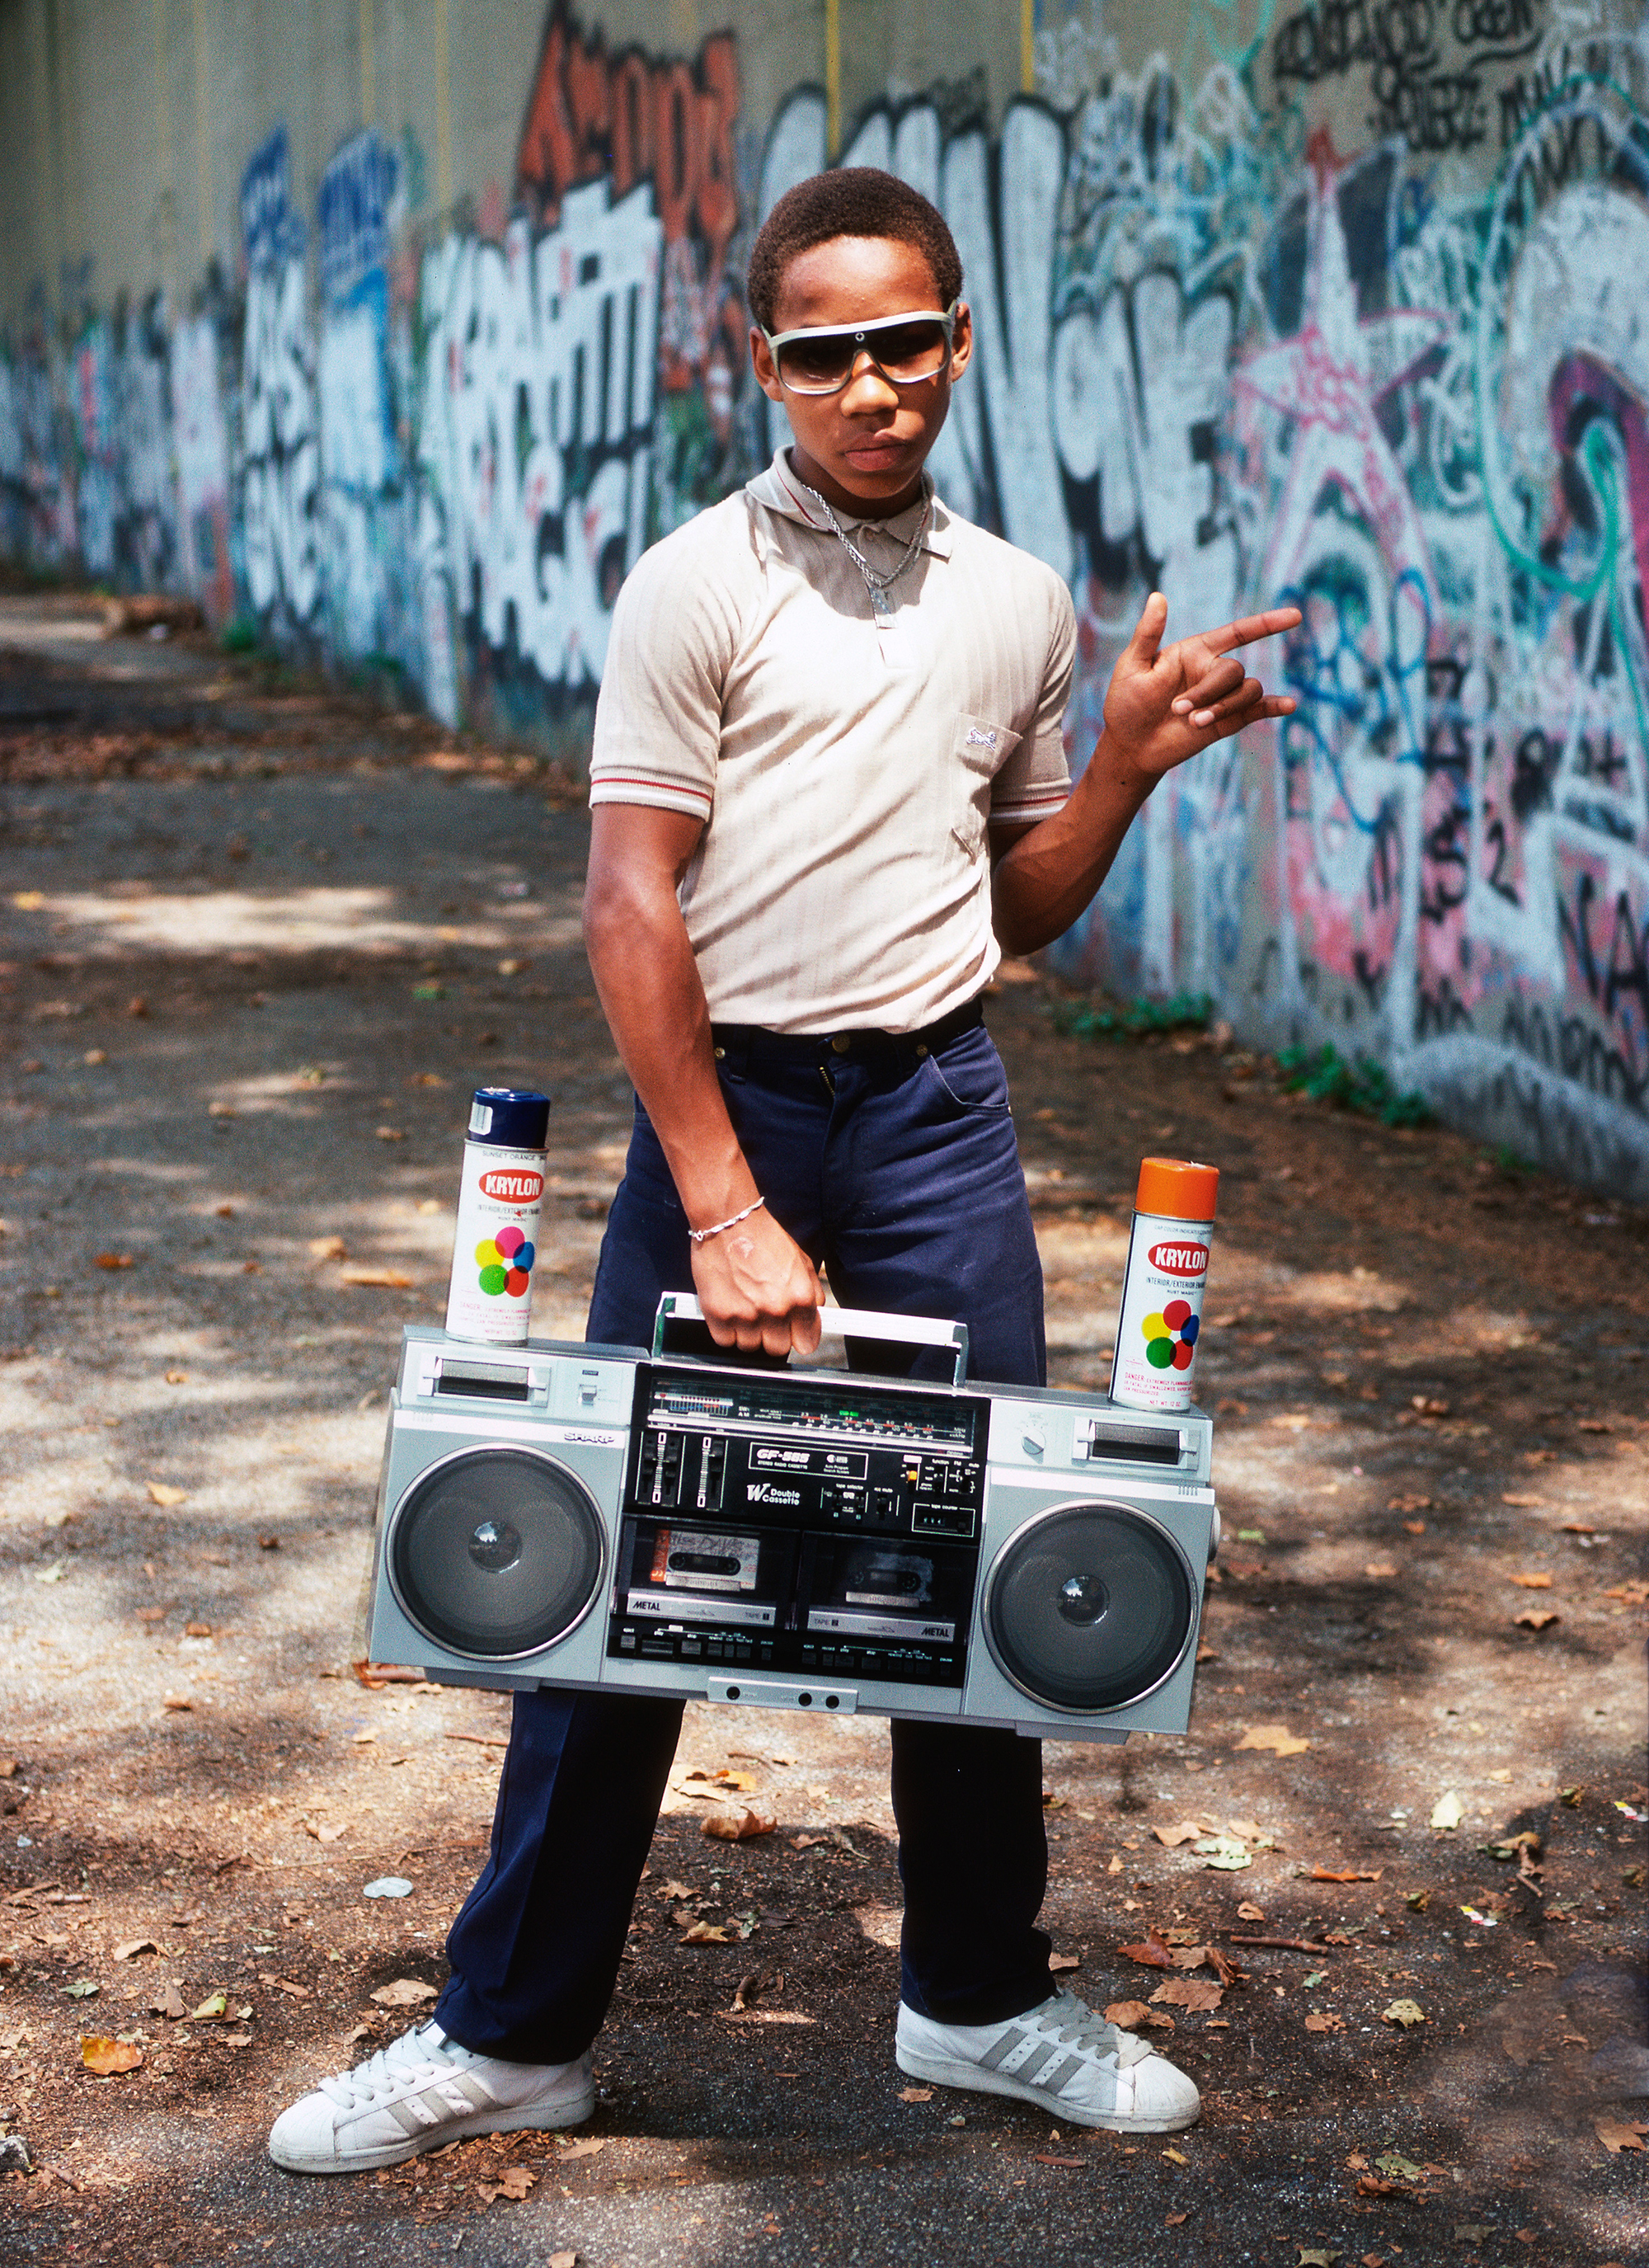 Little Crazy Legs During Shoot for Wild Style, Riverside Park, NY, 1983